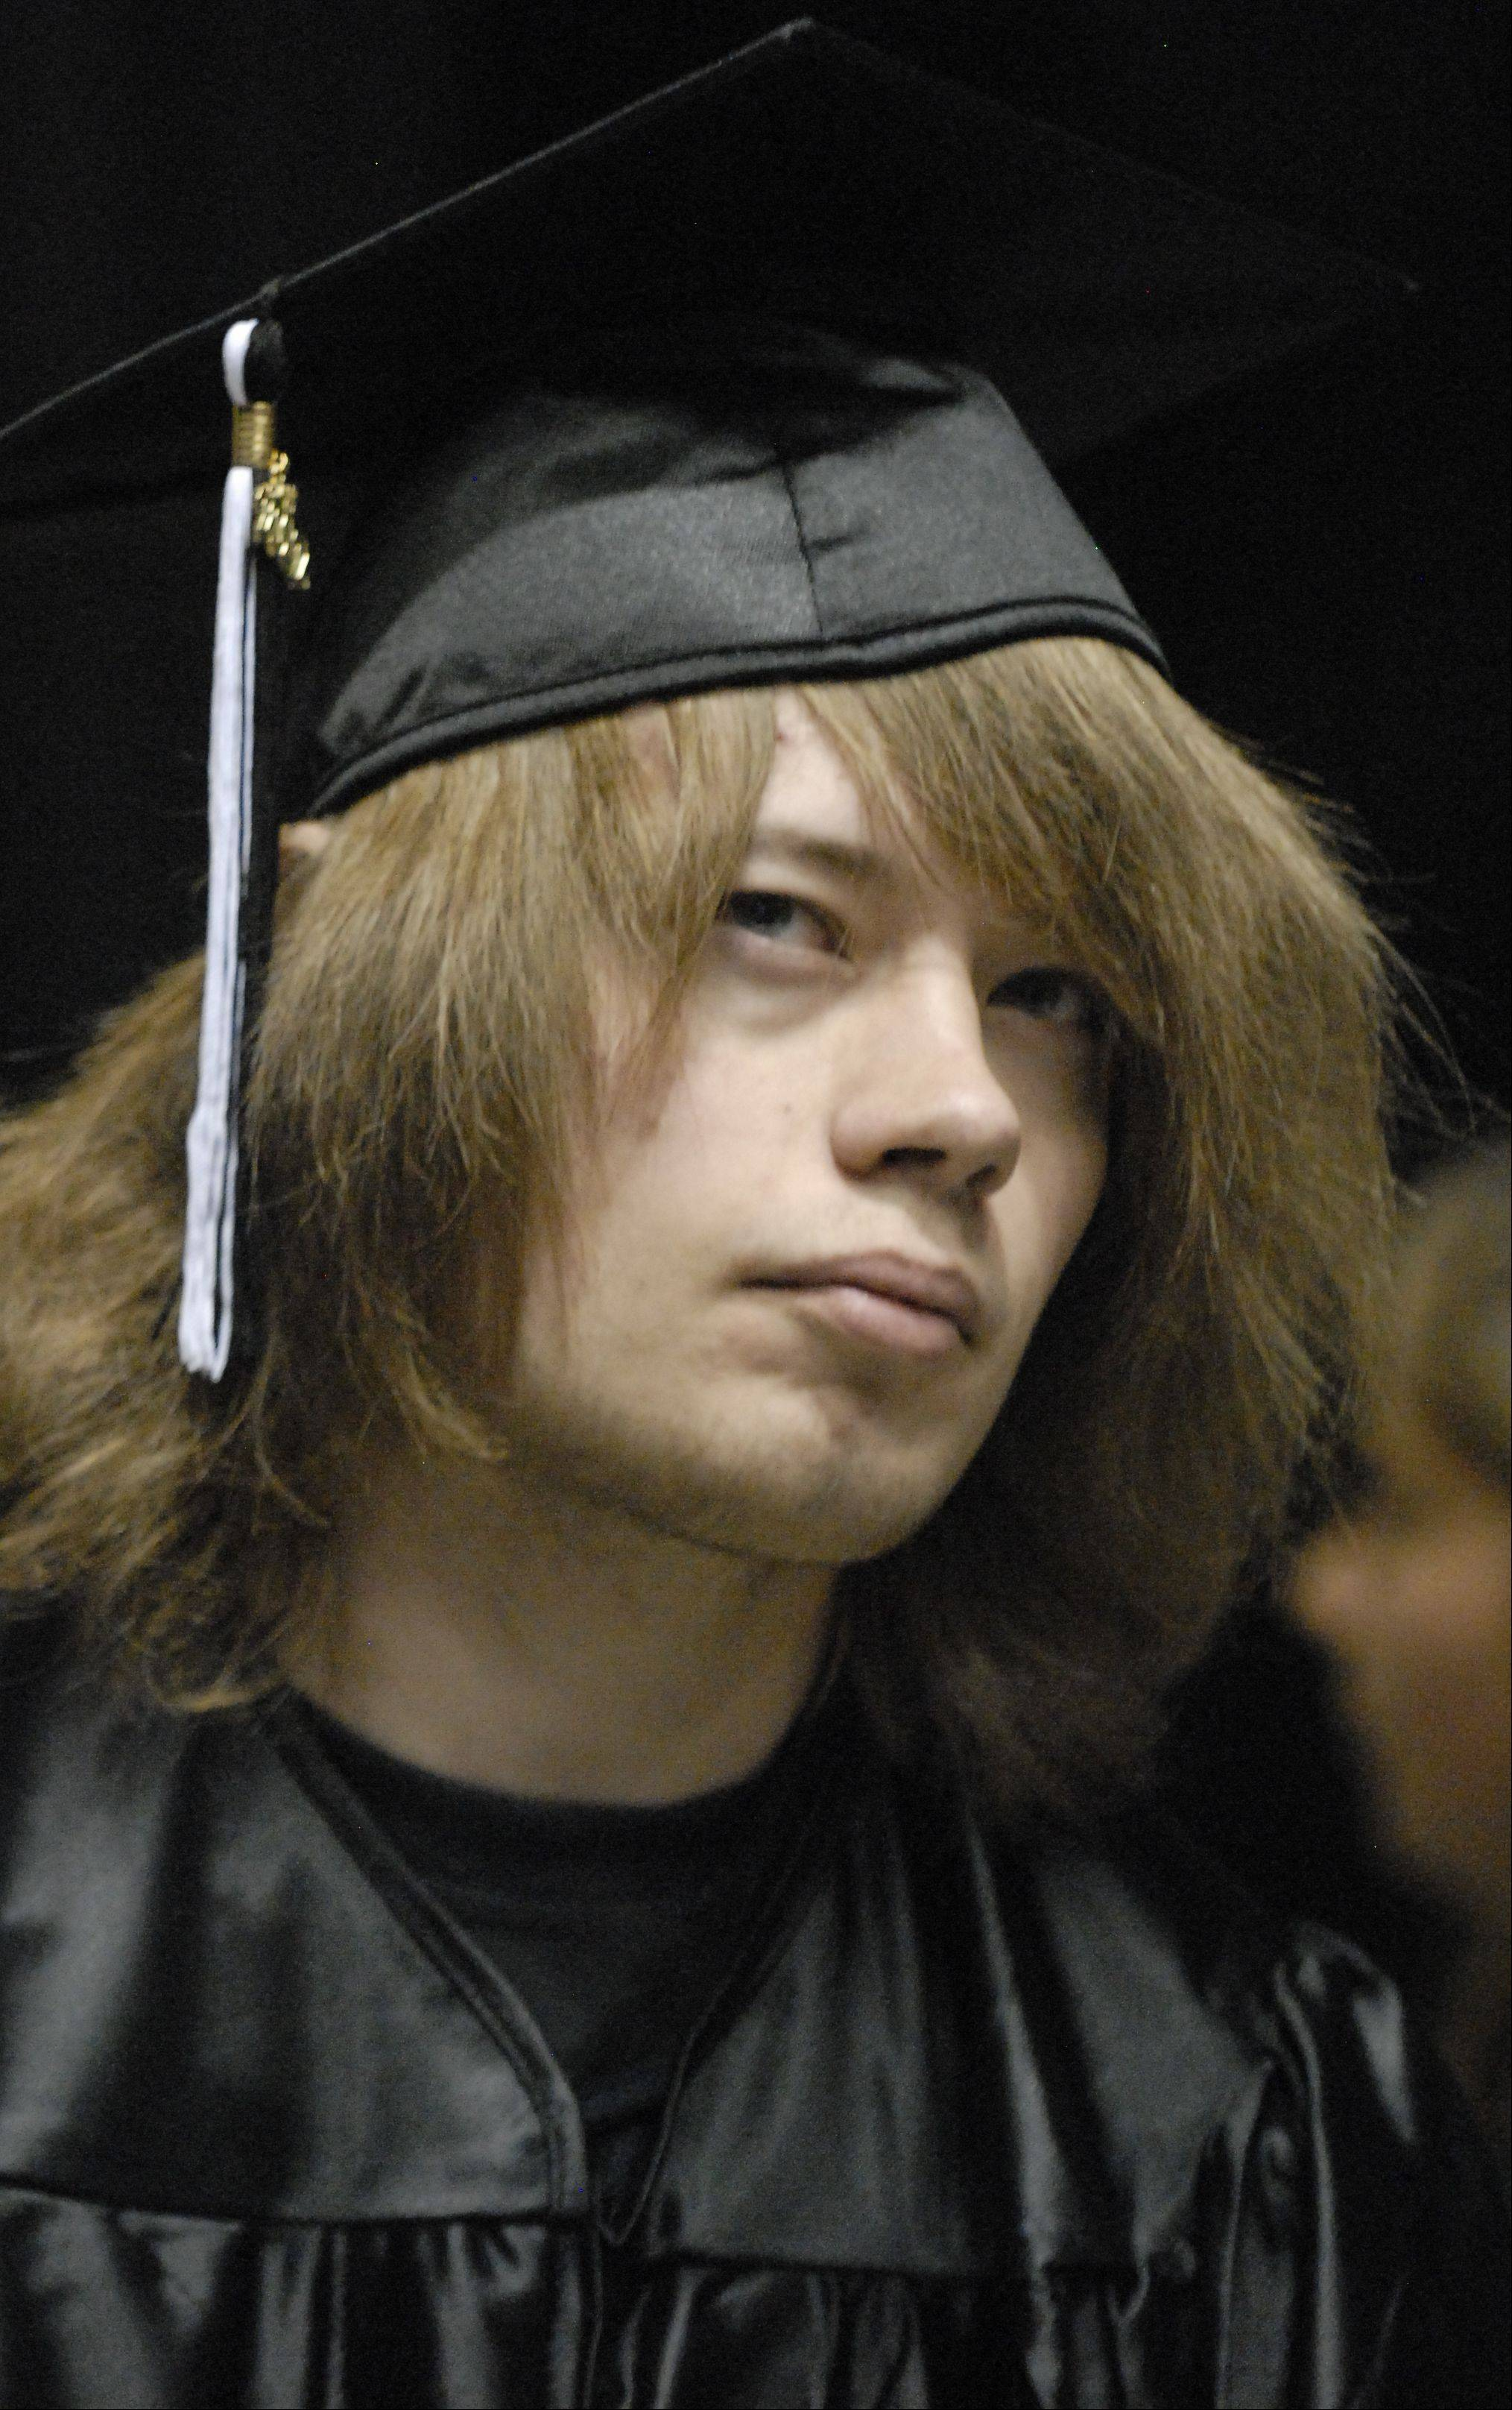 Images from the Kaneland High School graduation ceremony at the NIU Convocation Center in Dekalb Saturday, June 2, 2012.